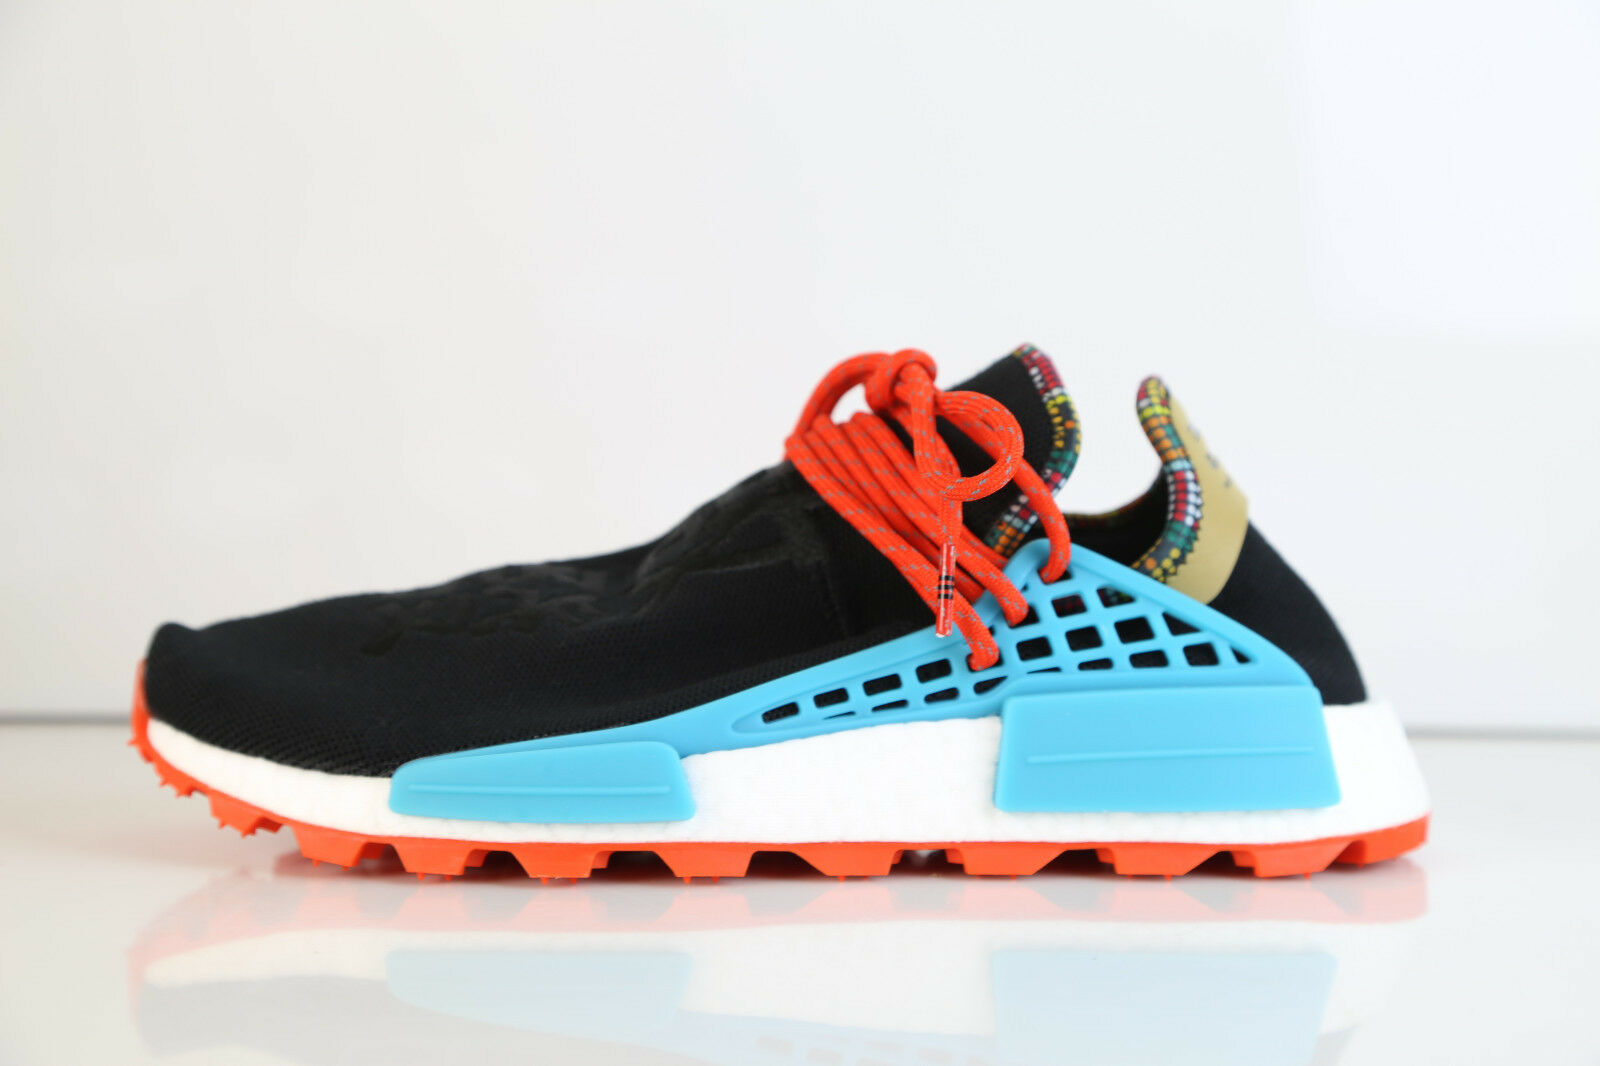 Adidas Pharrell Williams Human Race Hu NMD Solar Inspiration Black EE7582 8-12